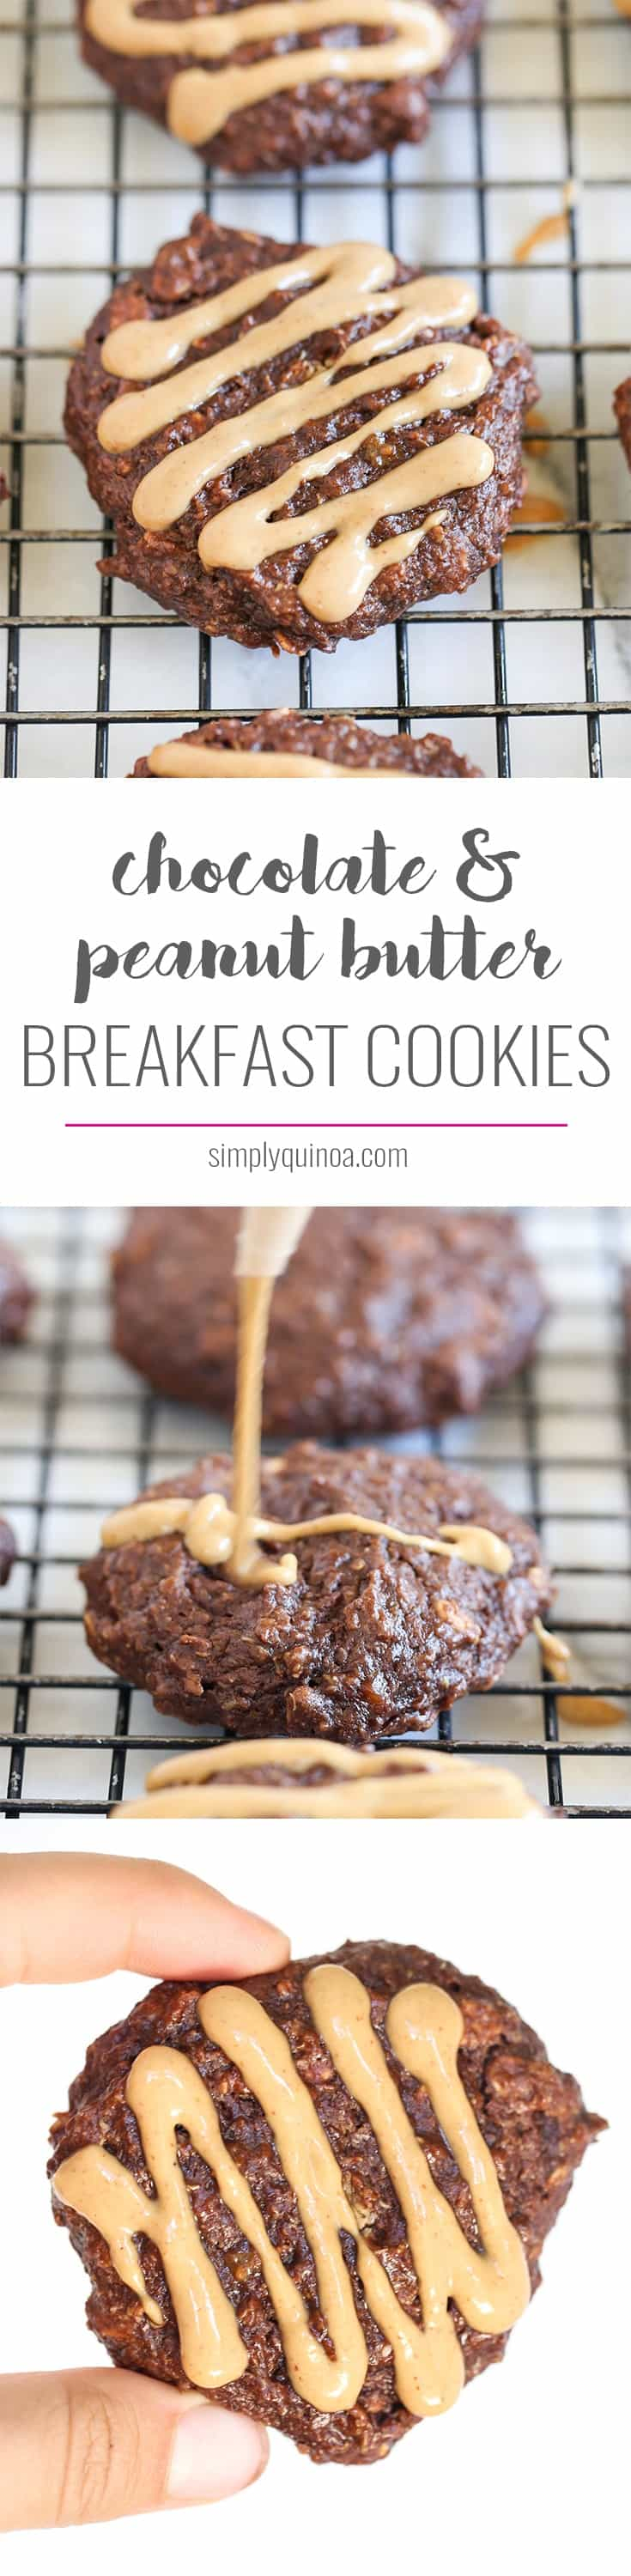 These quinoa breakfast cookies taste like dessert, but are healthy enough for breakfast! Flavored with banana, peanut butter, chocolate, oats, quinoa & more!